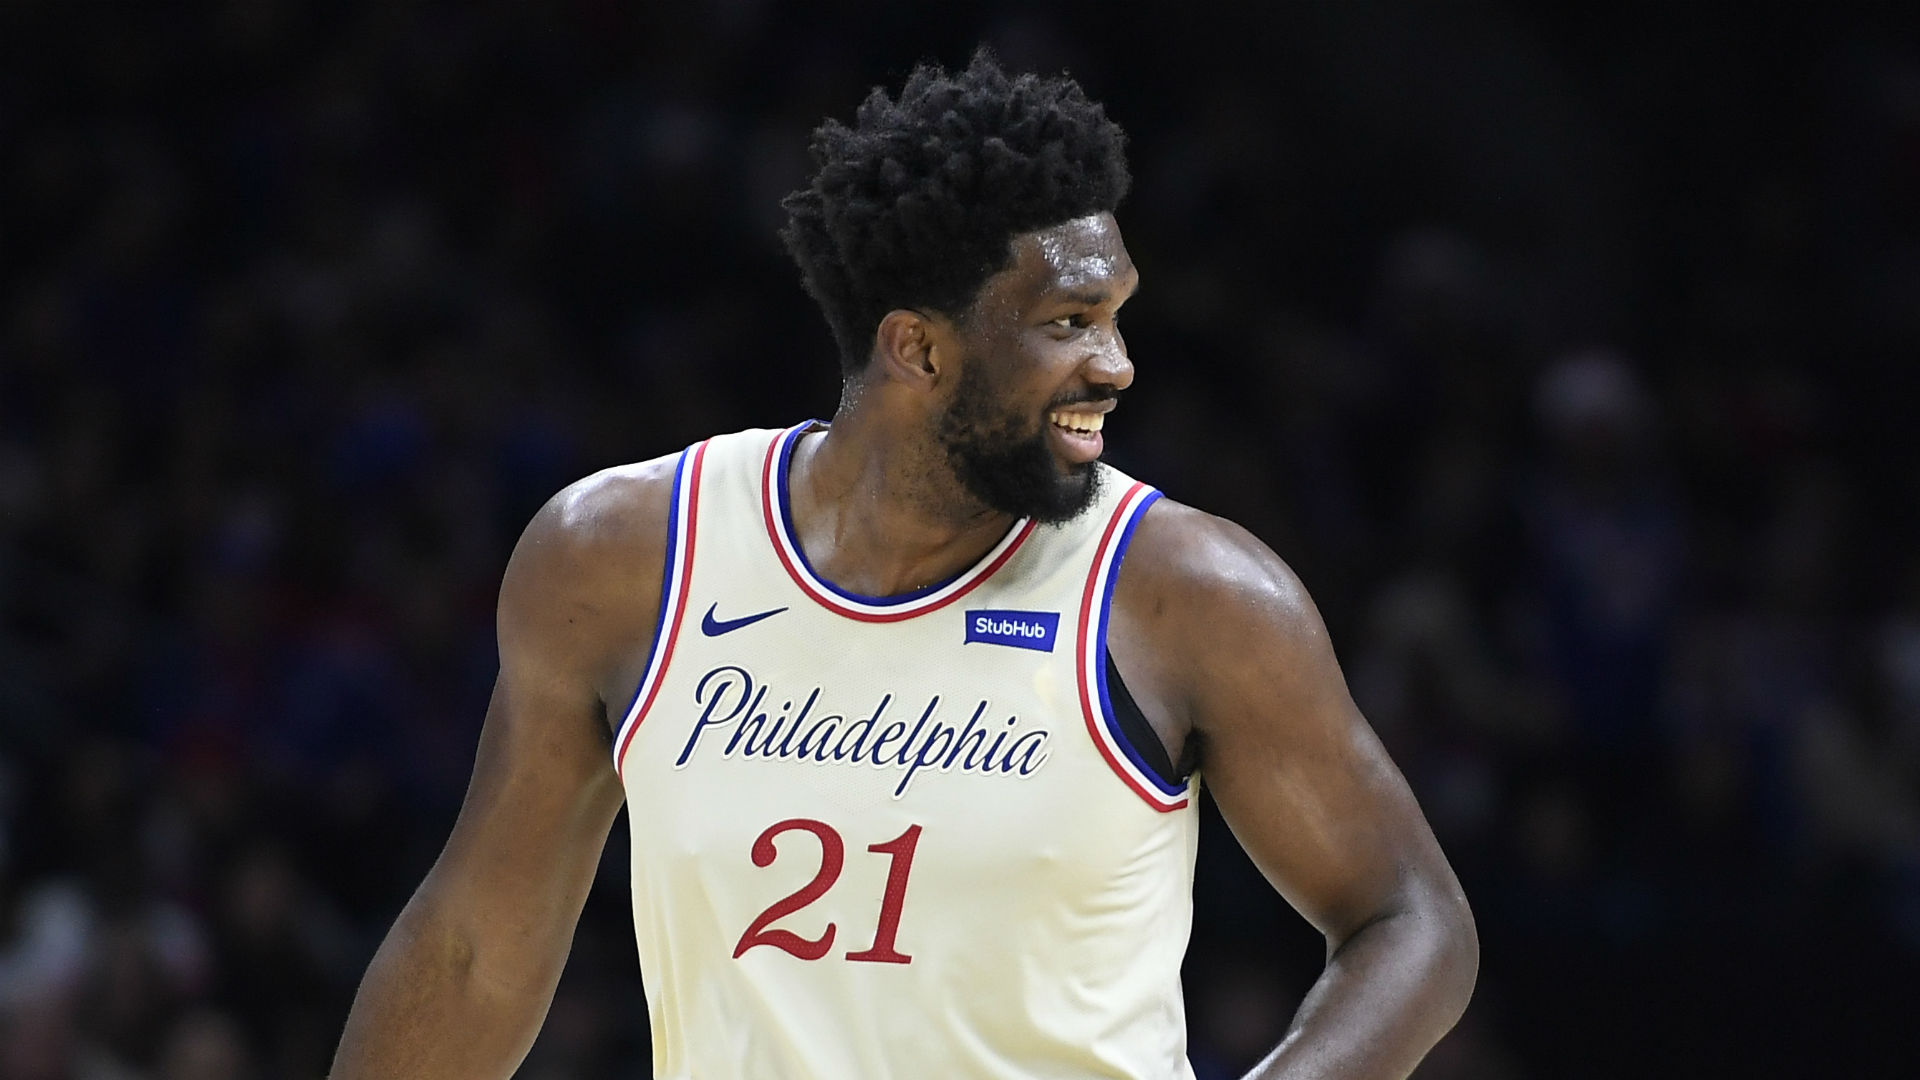 76ers coach says no one has worked harder than Joel Embiid ahead of NBA's return 1